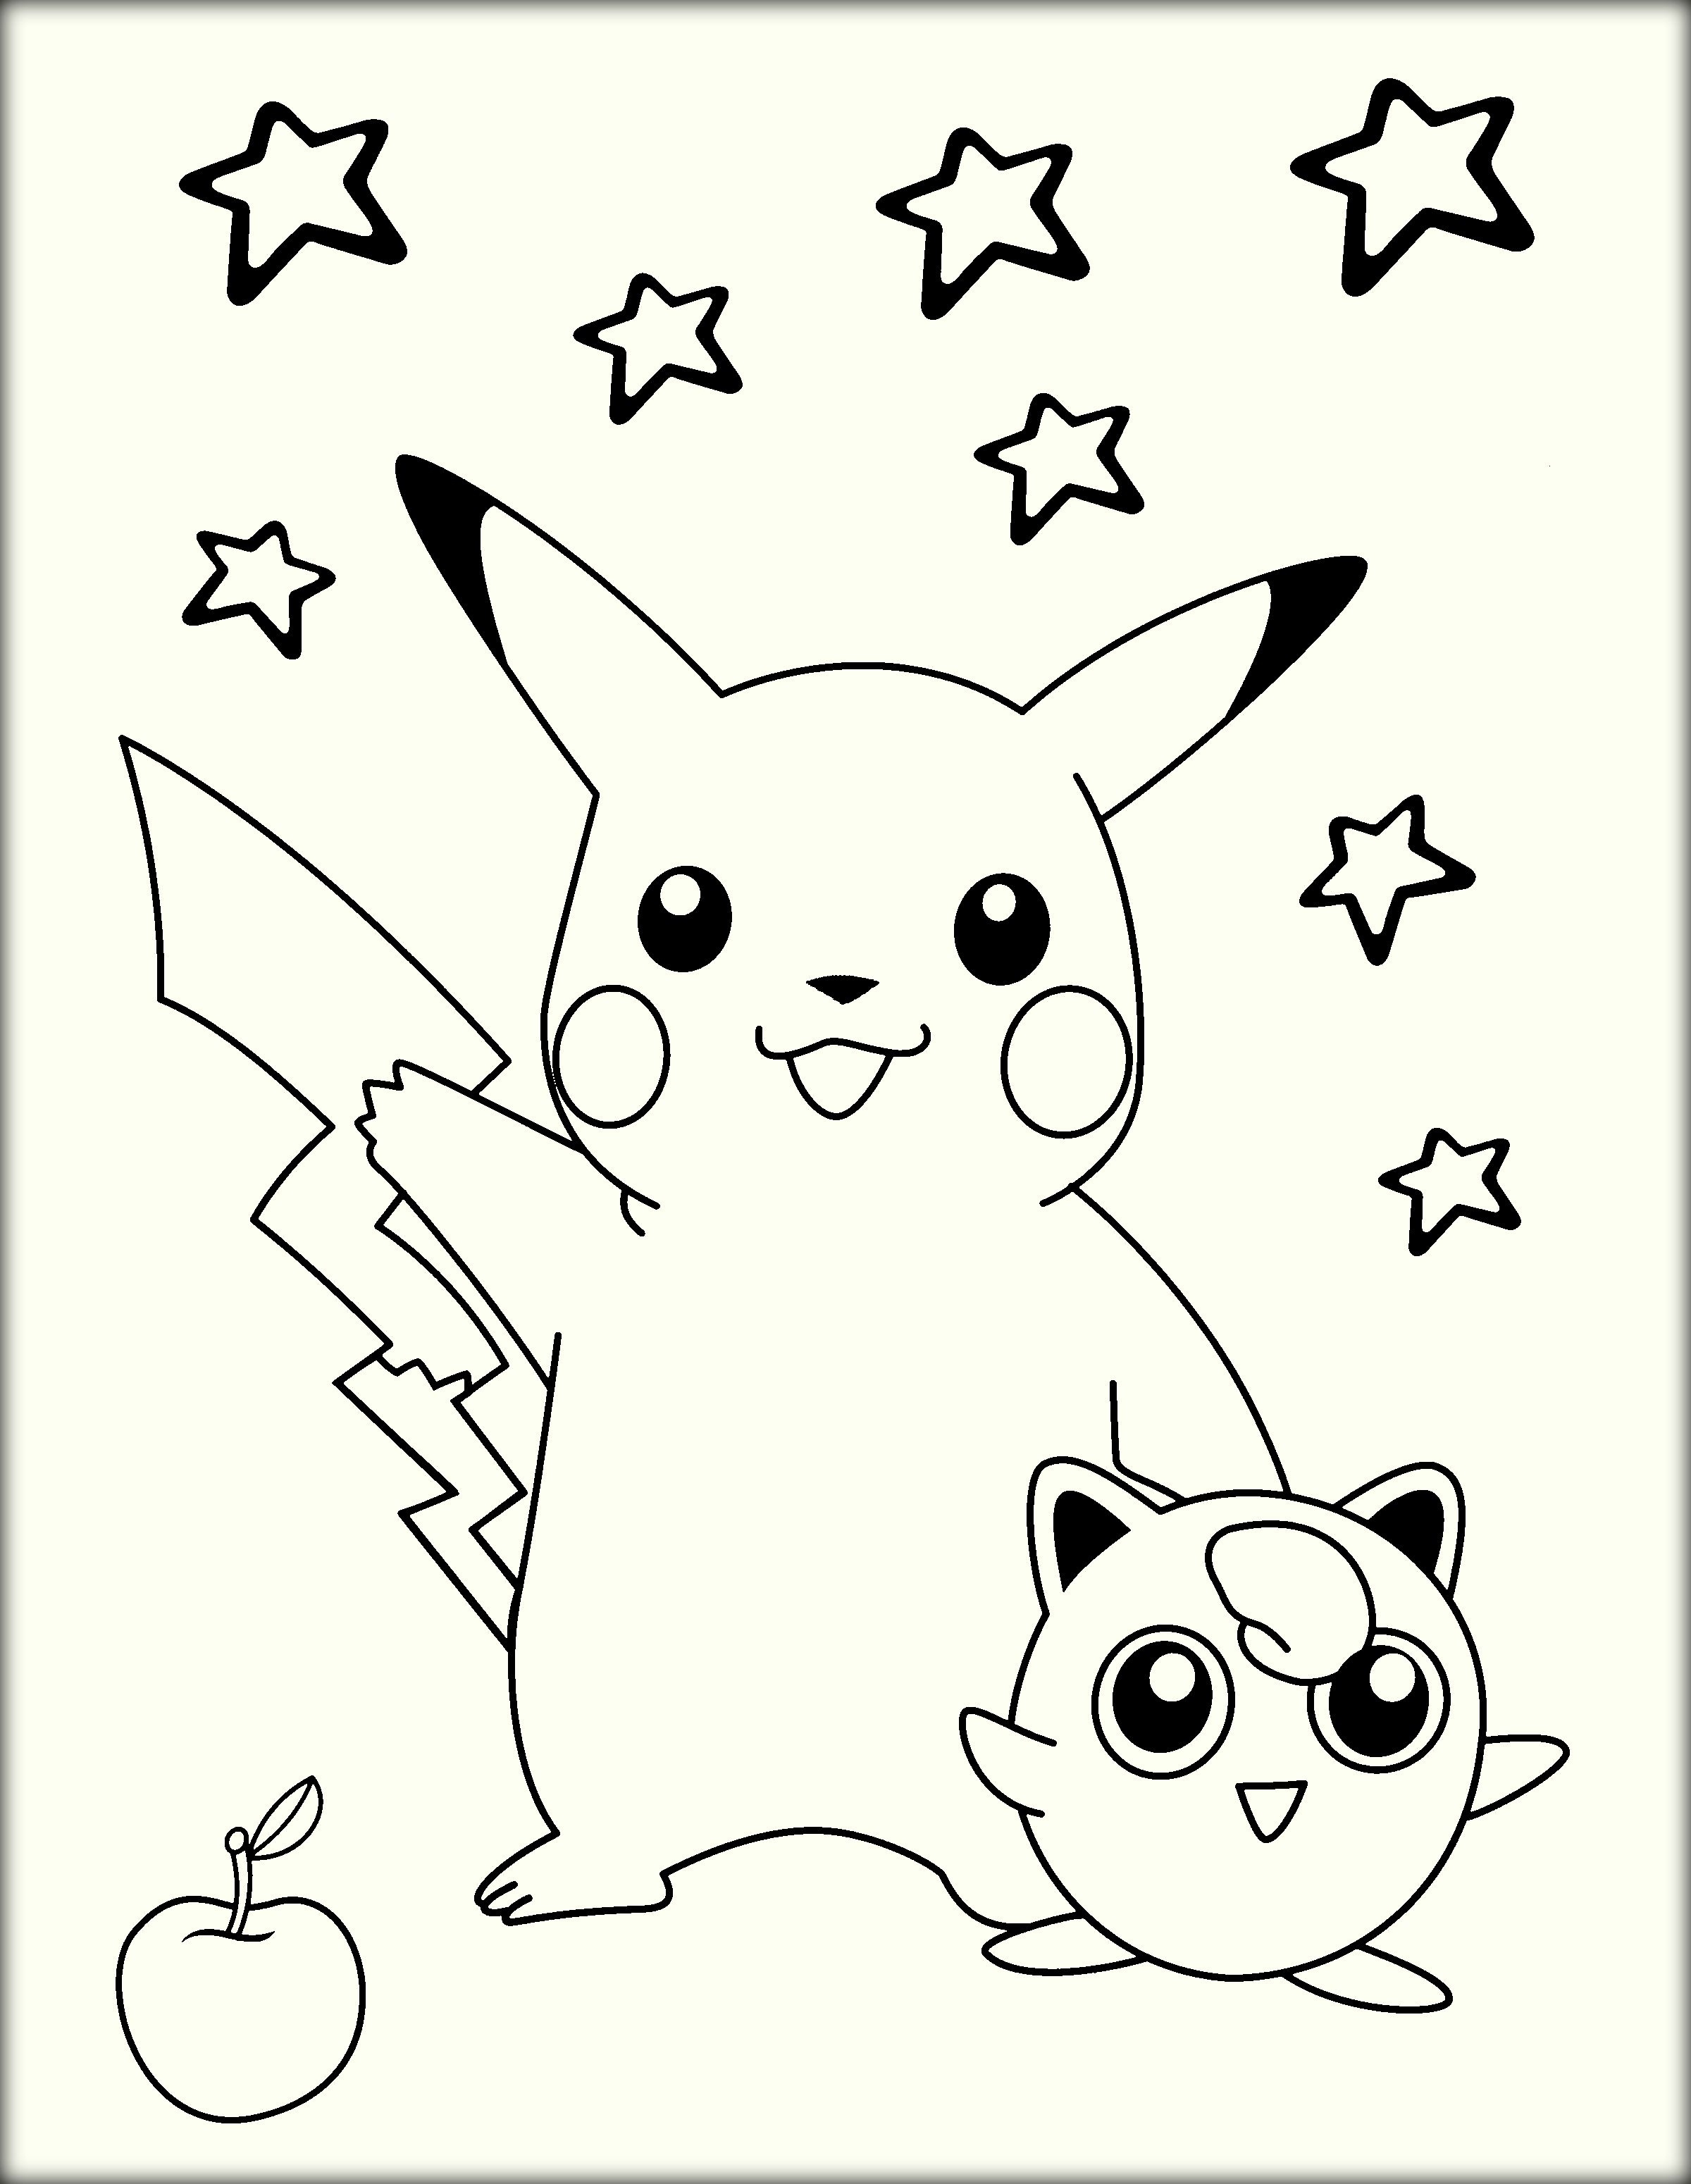 Free Printable Pokemon Coloring Pages 23 Pokemon Printable Coloring - Free Printable Pokemon Coloring Pages